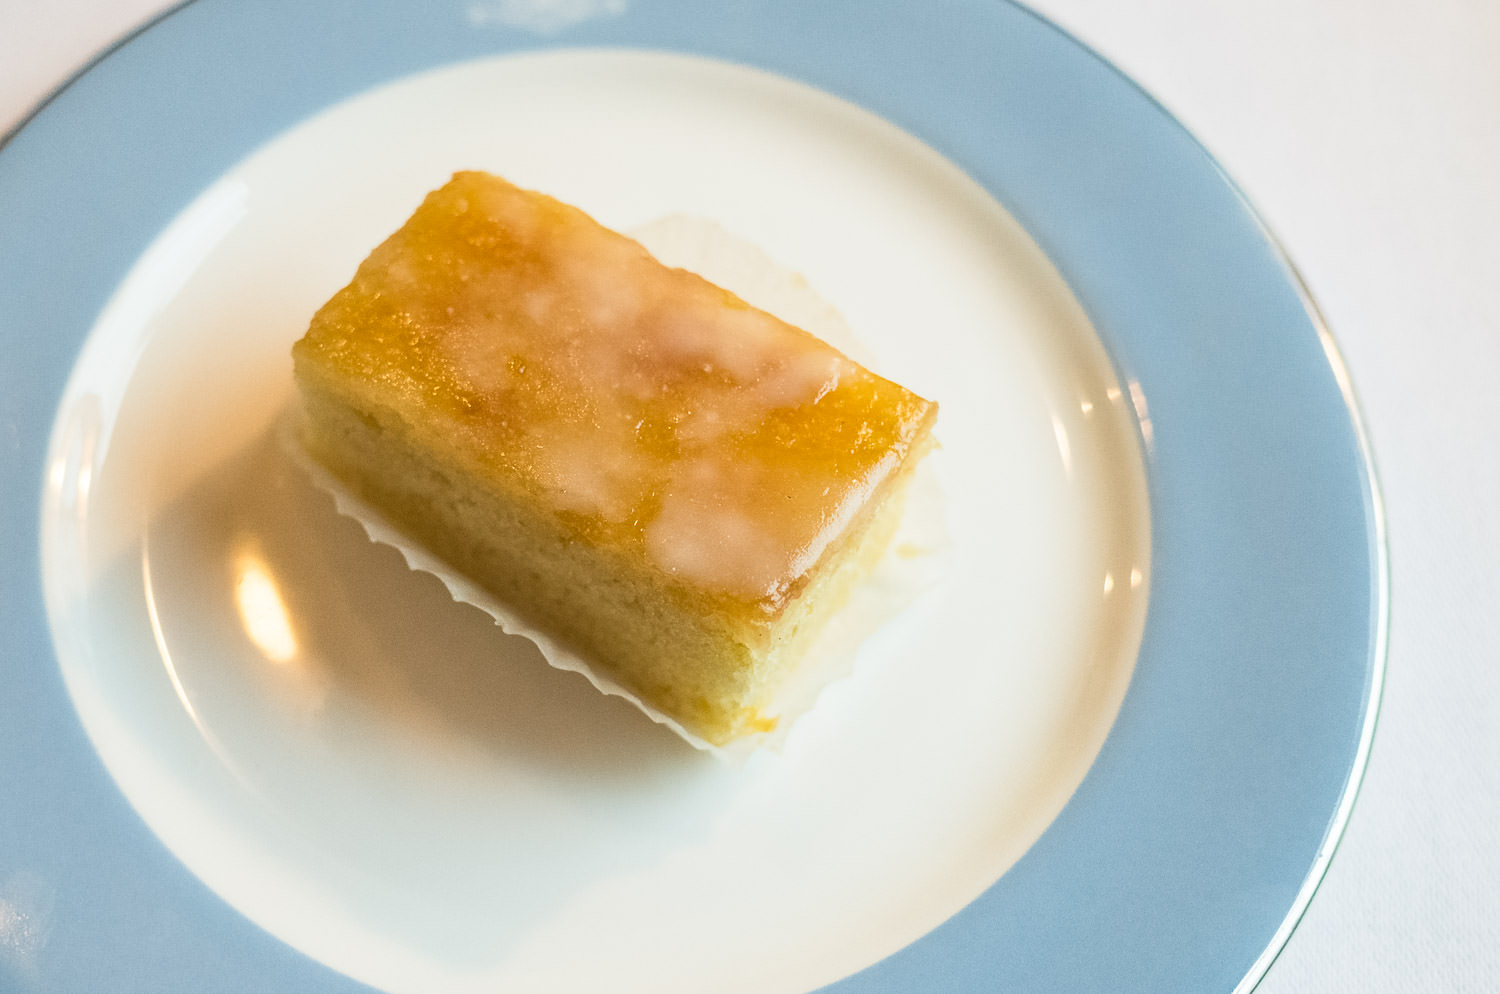 Lemon Drizzle